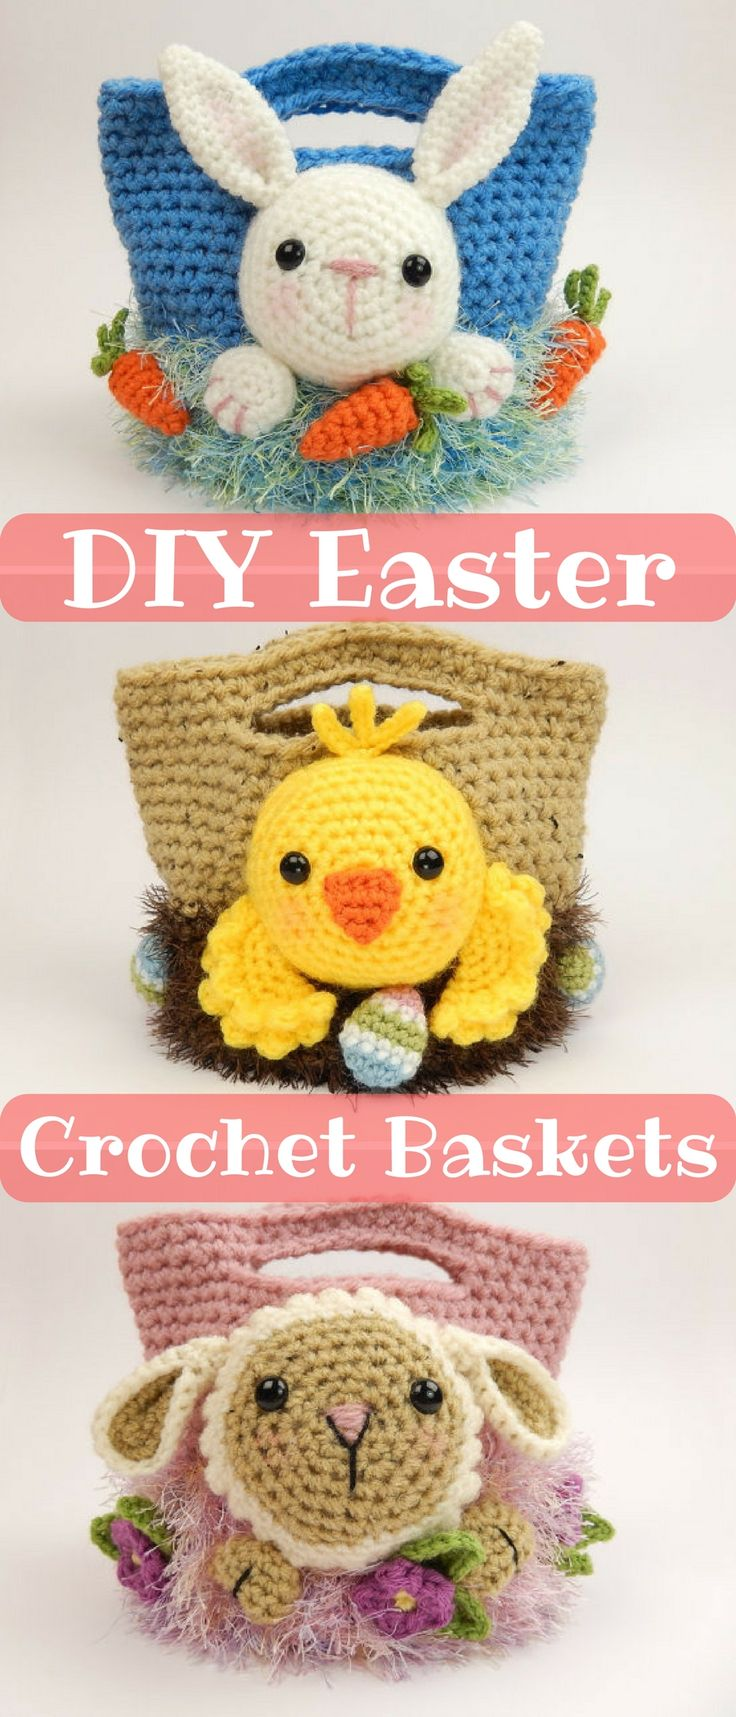 This great crochet pattern is for three different Easter Treat bags. Make a bunny, a chick, a lamb or go wild and make them all! Use them to hunt the easter egg hunt or fill them with chocolate. #easter #ad #crochetpattern